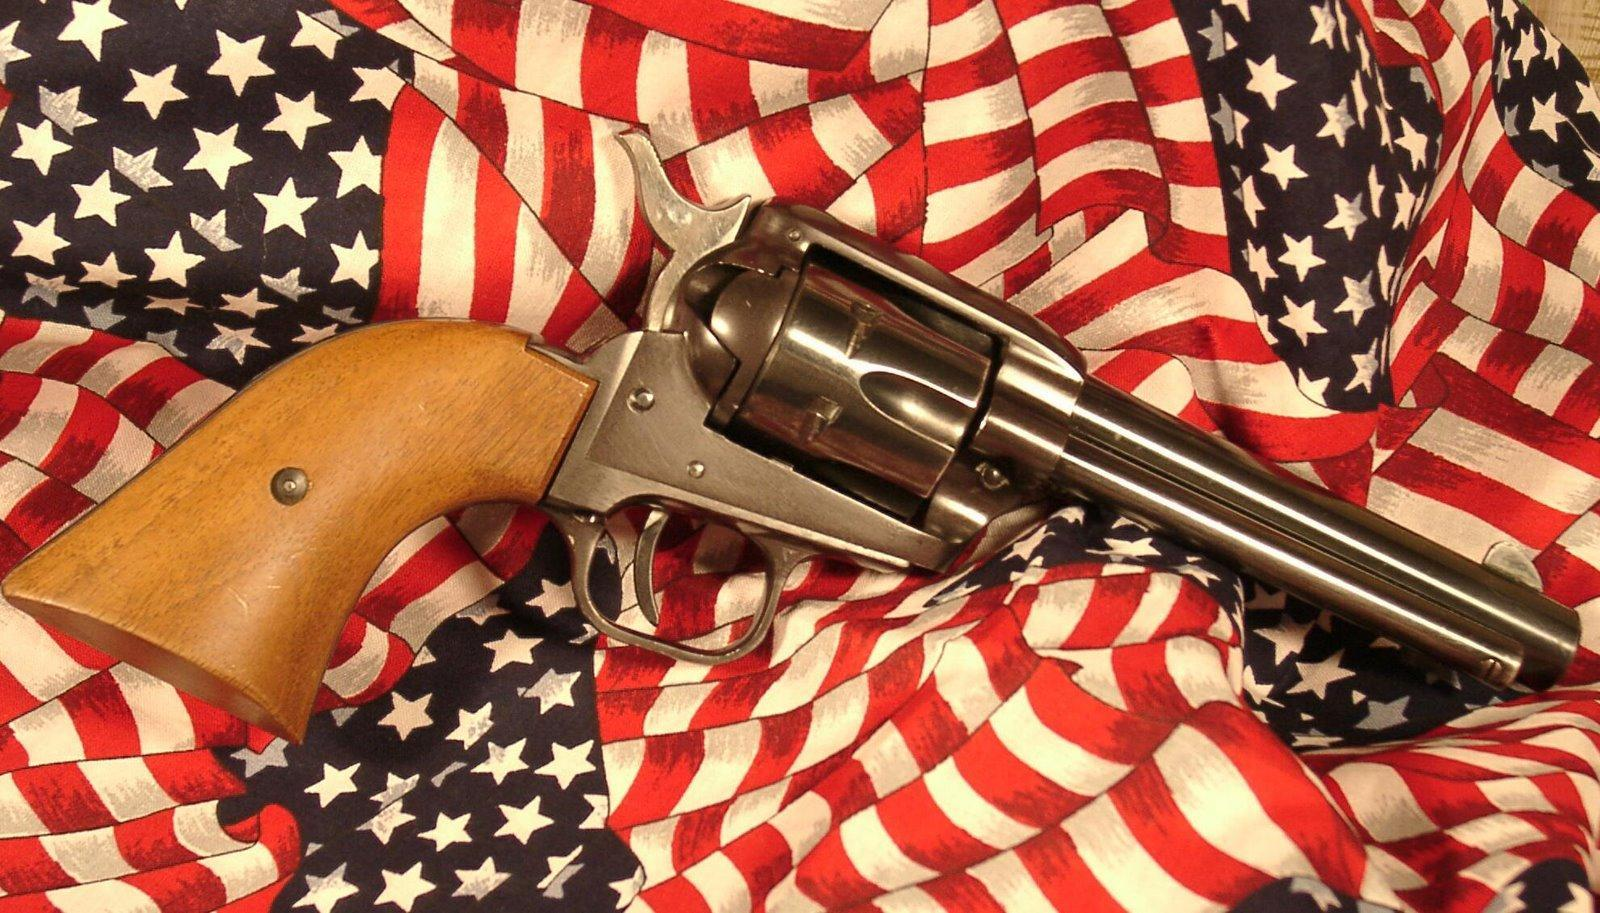 Reformation Over Prohibition: The Issue of Gun Rights